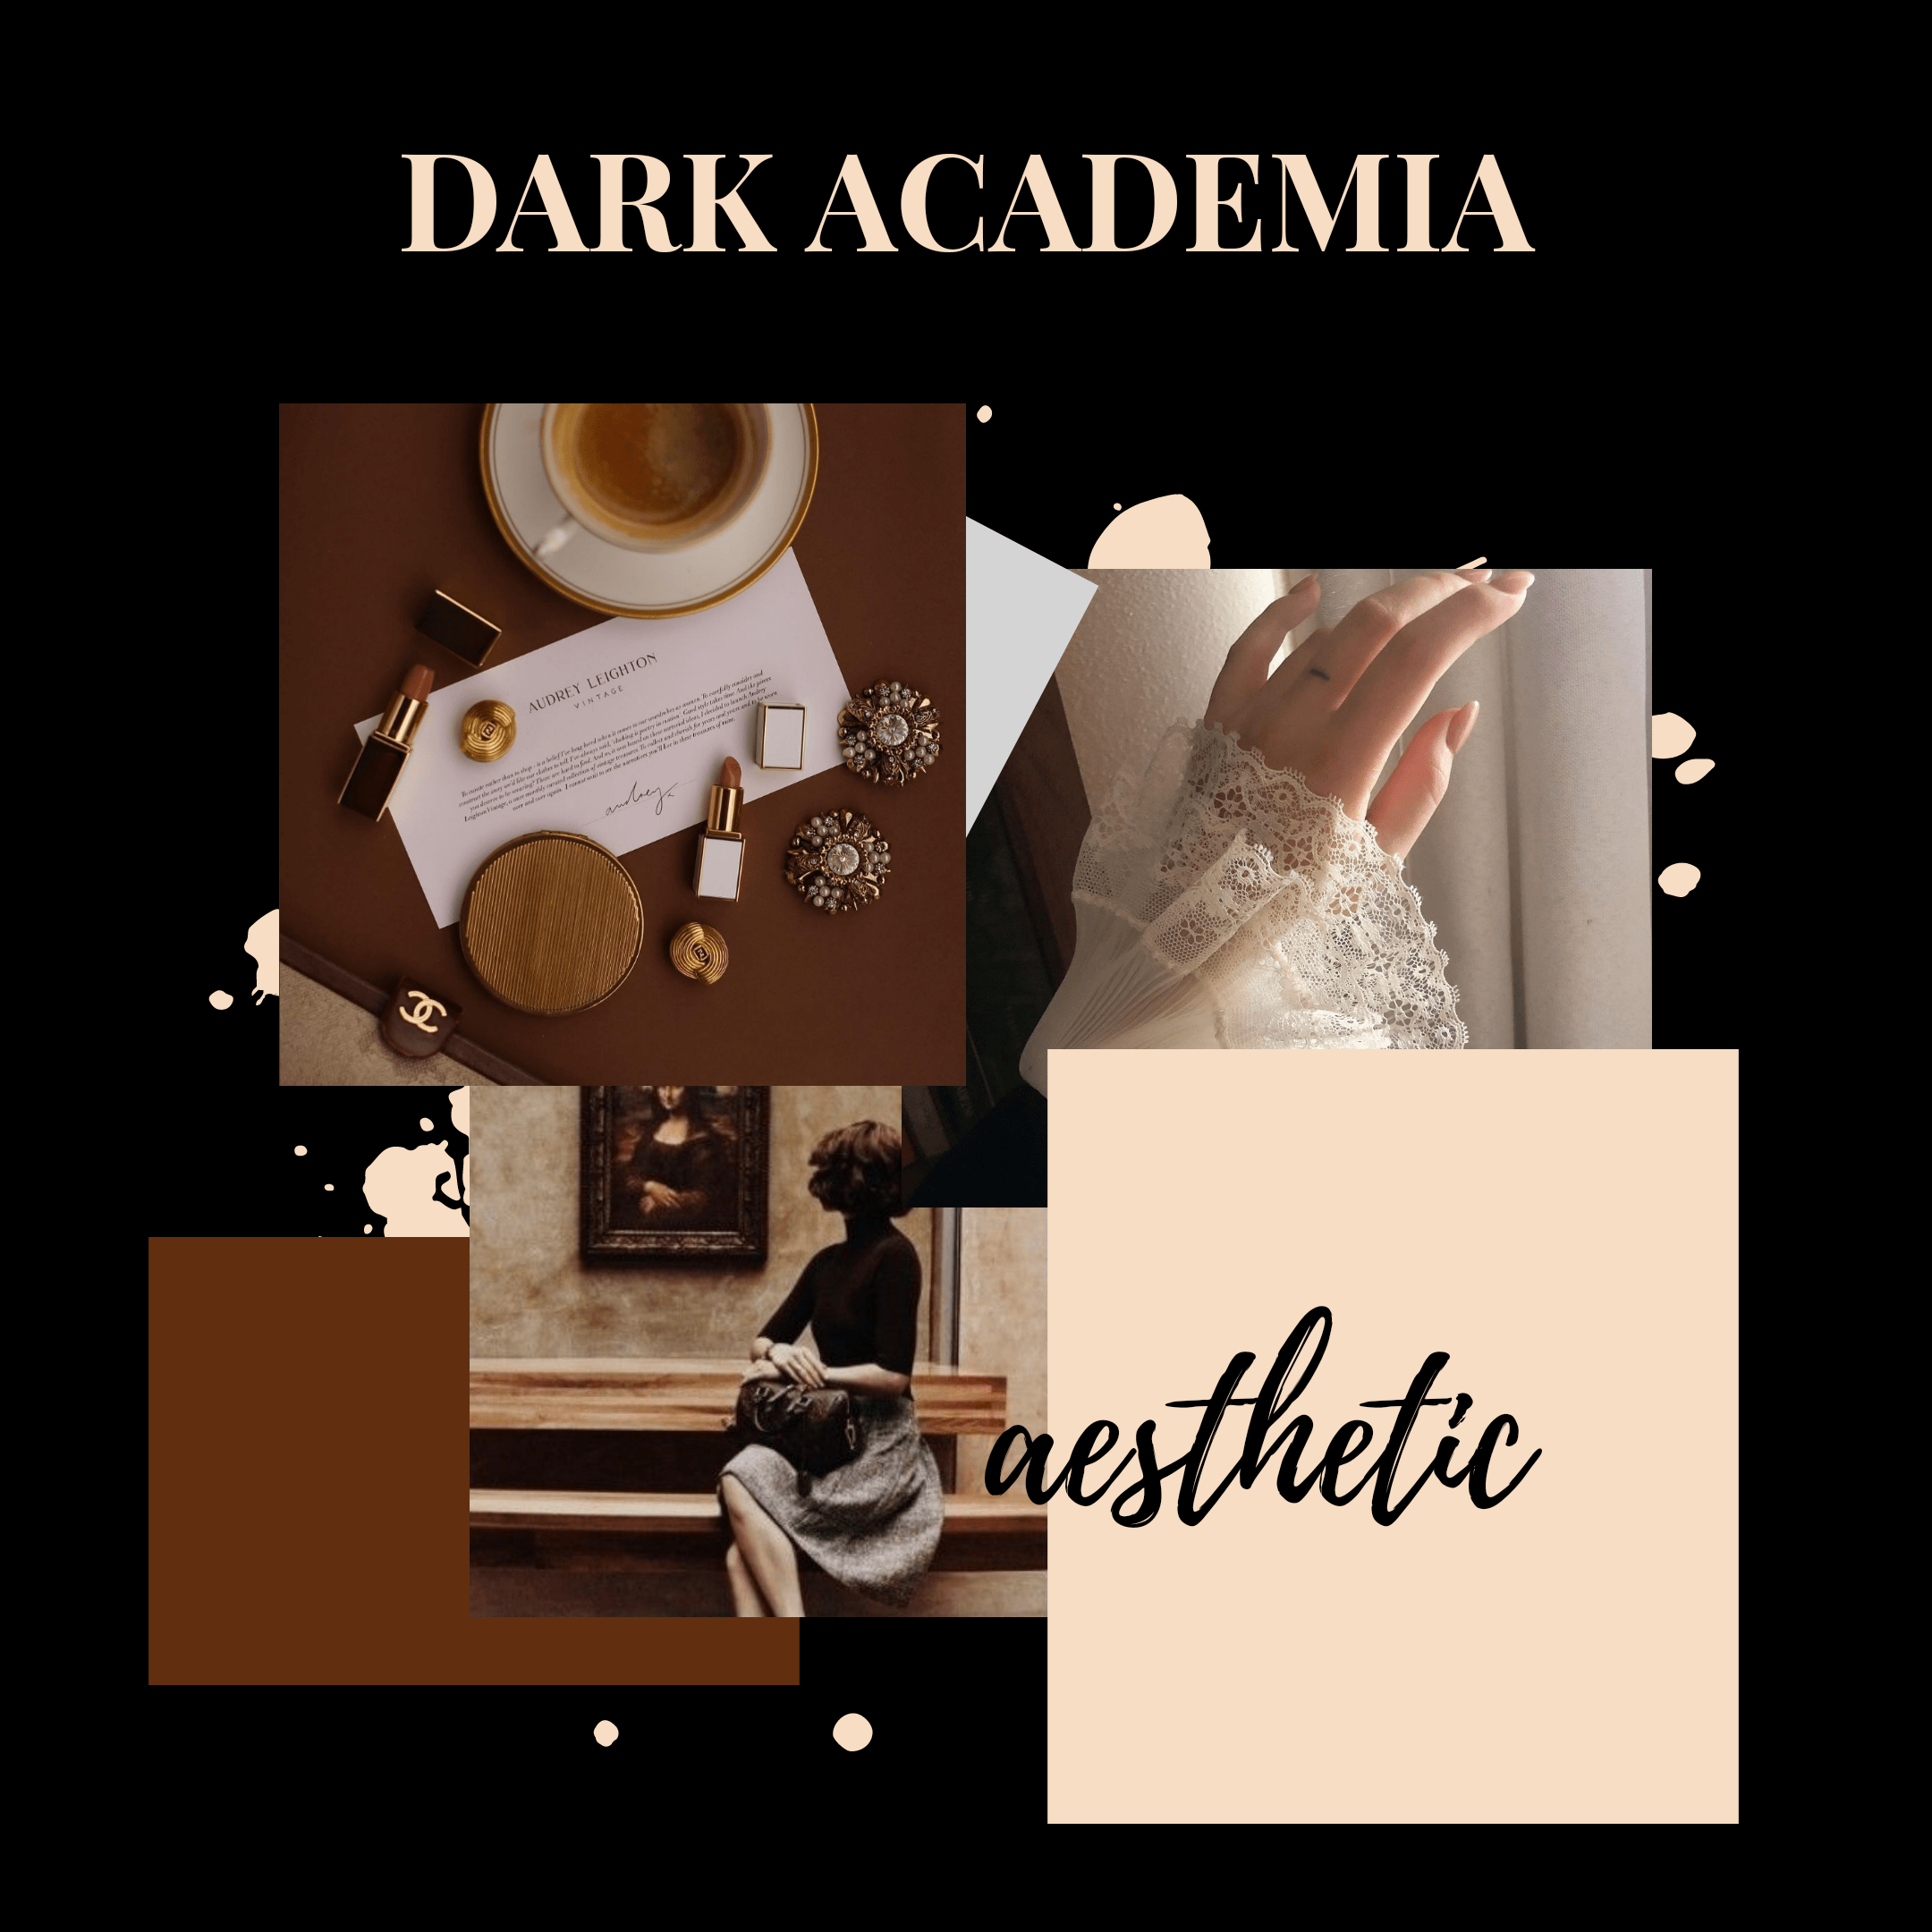 Anaesthetic mood board for dark academia fashion aesthetic; a TikTok subculture.